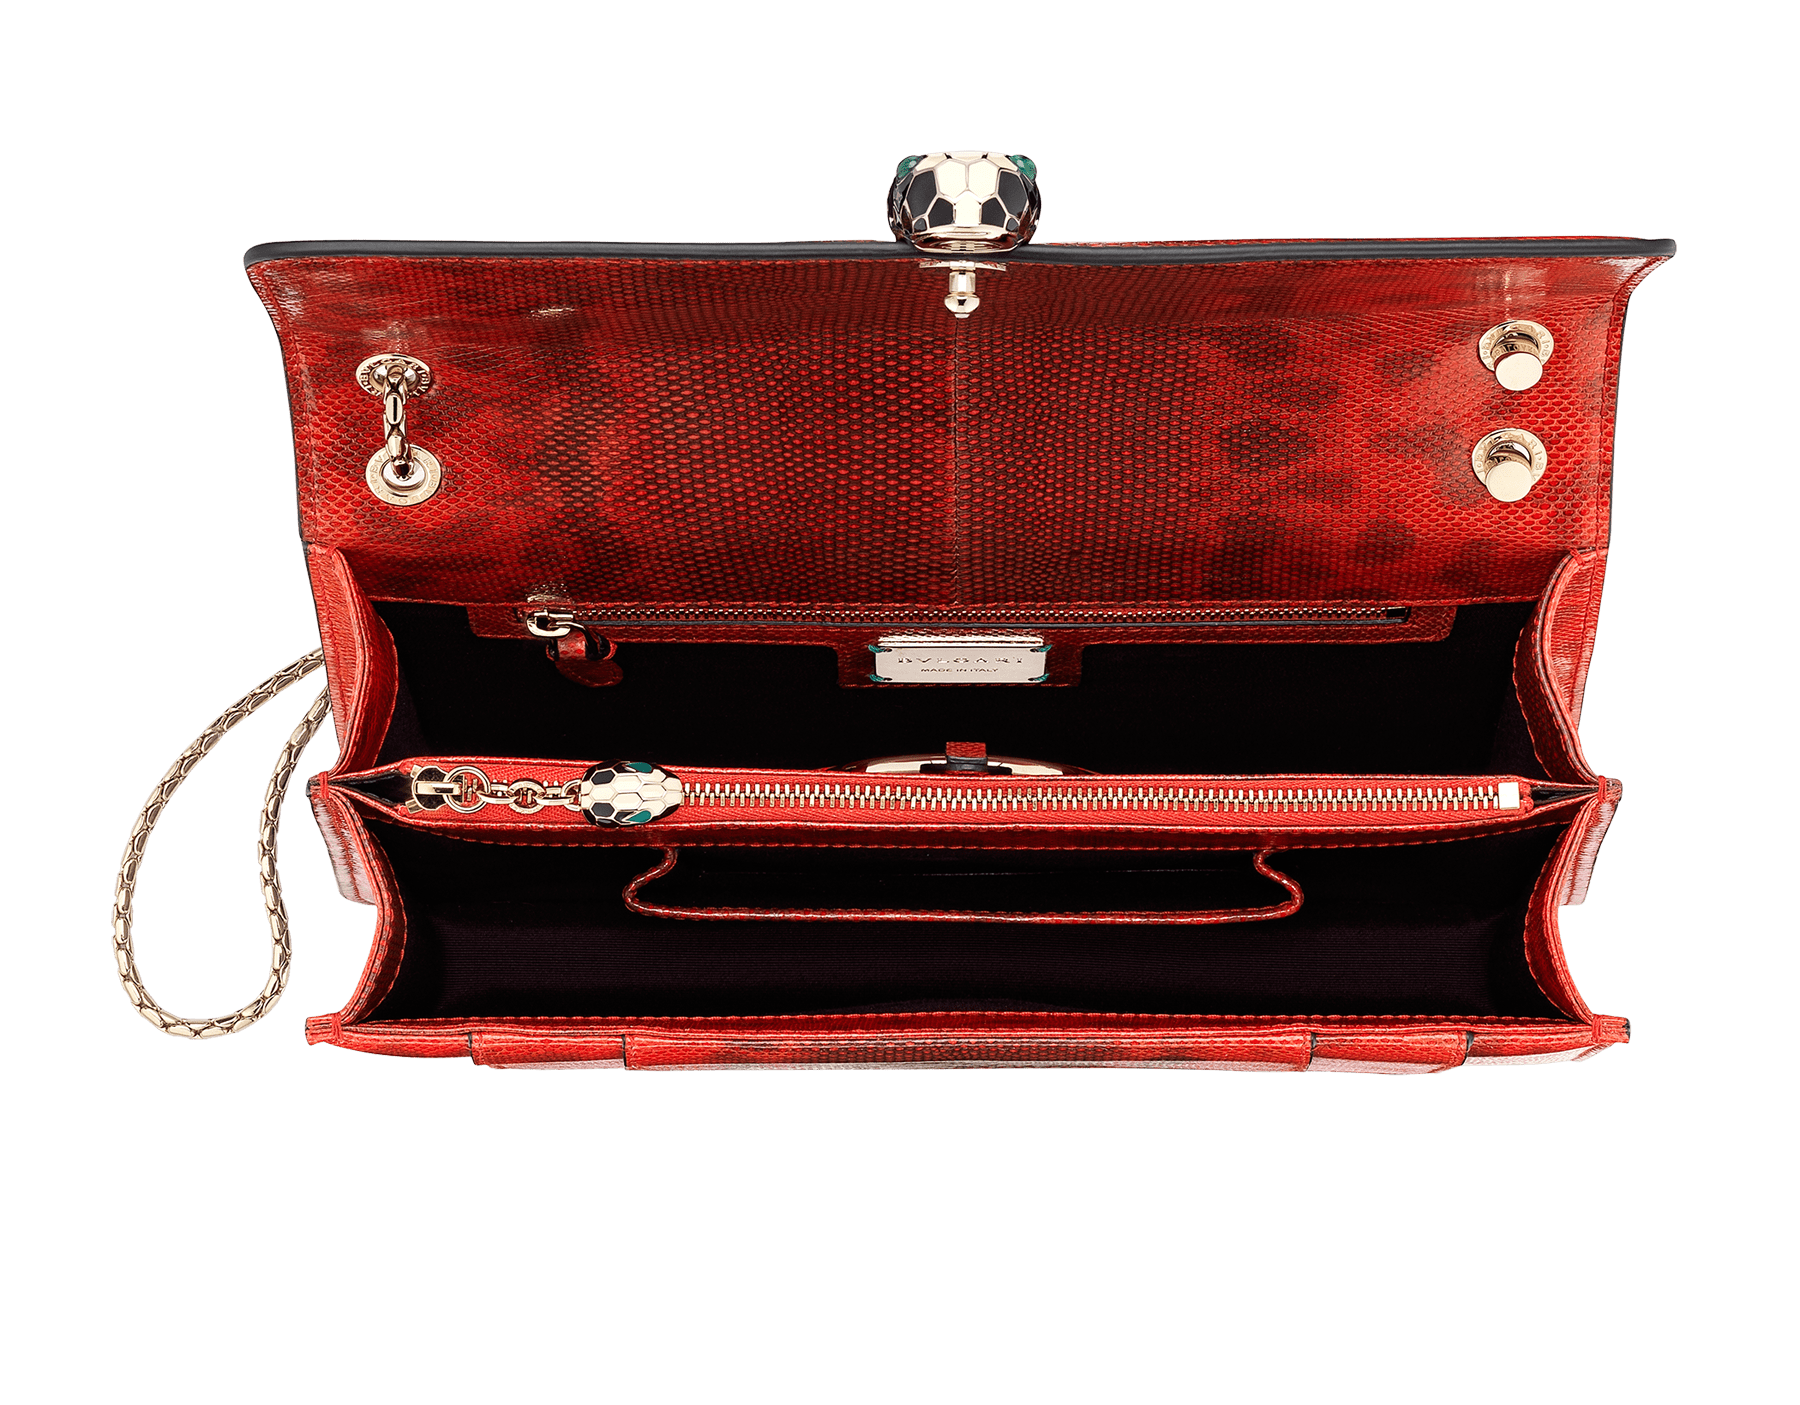 Serpenti Forever shoulder bag in sea star coral shiny karung skin. Snakehead closure in light gold plated brass decorated with black and white enamel, and green malachite eyes. 287918 image 4